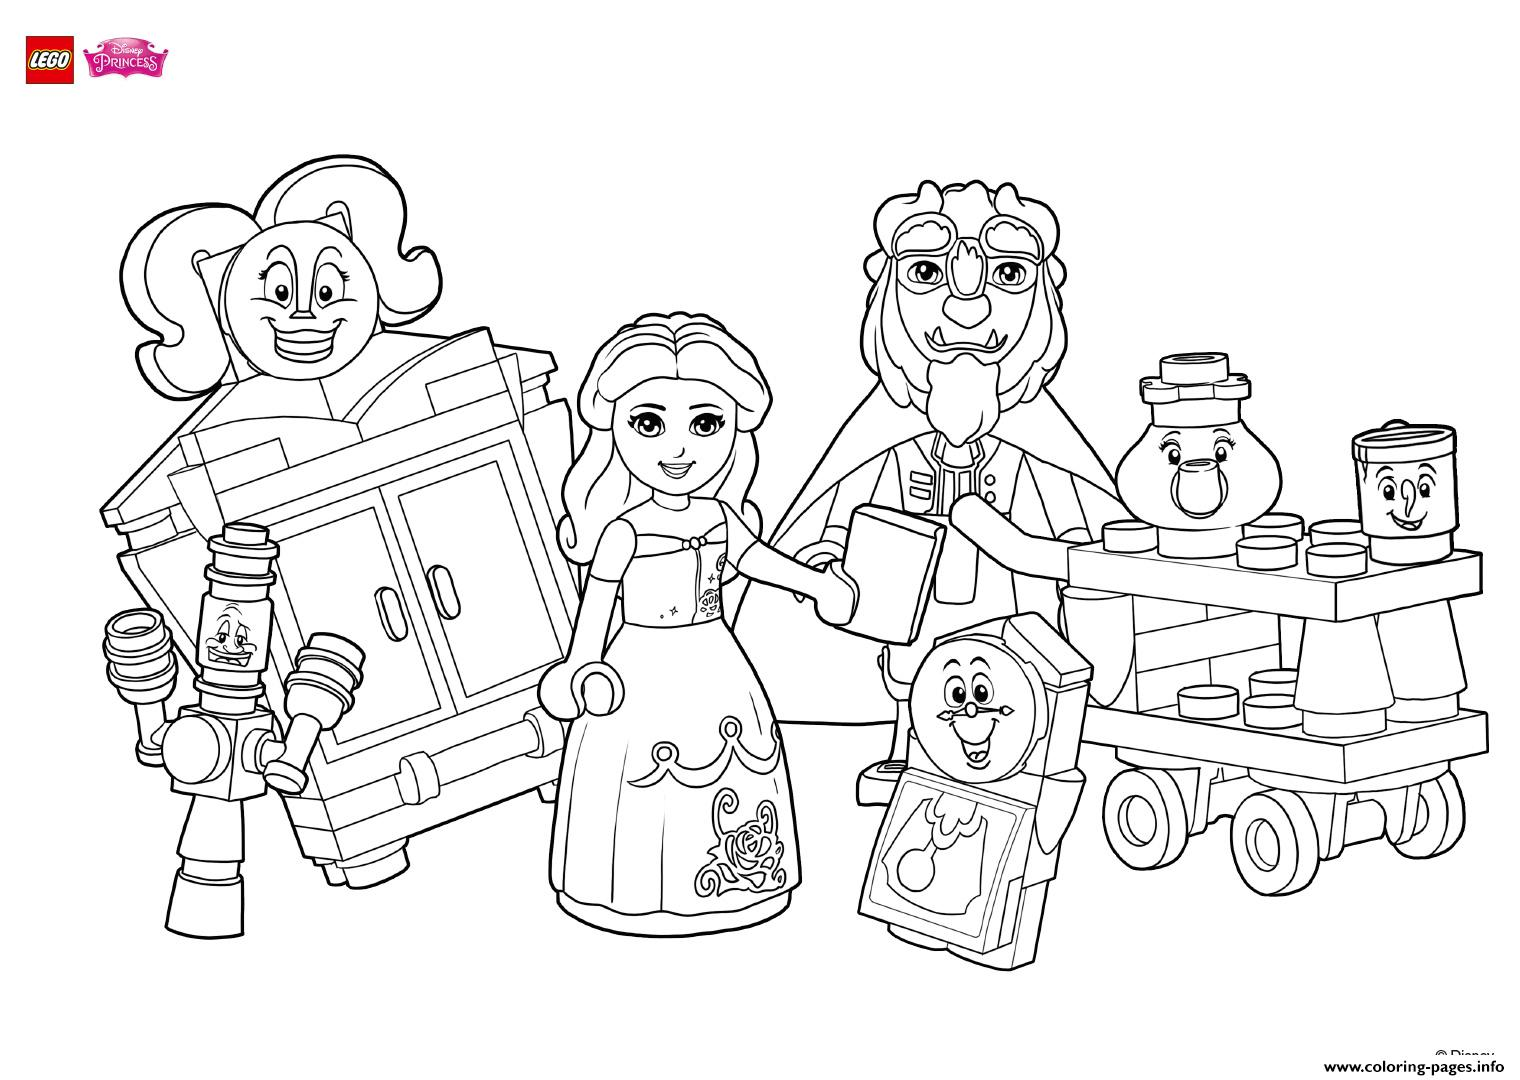 disney princess lego coloring pages coloring fun with beauty and her friends lego disney coloring pages princess lego disney